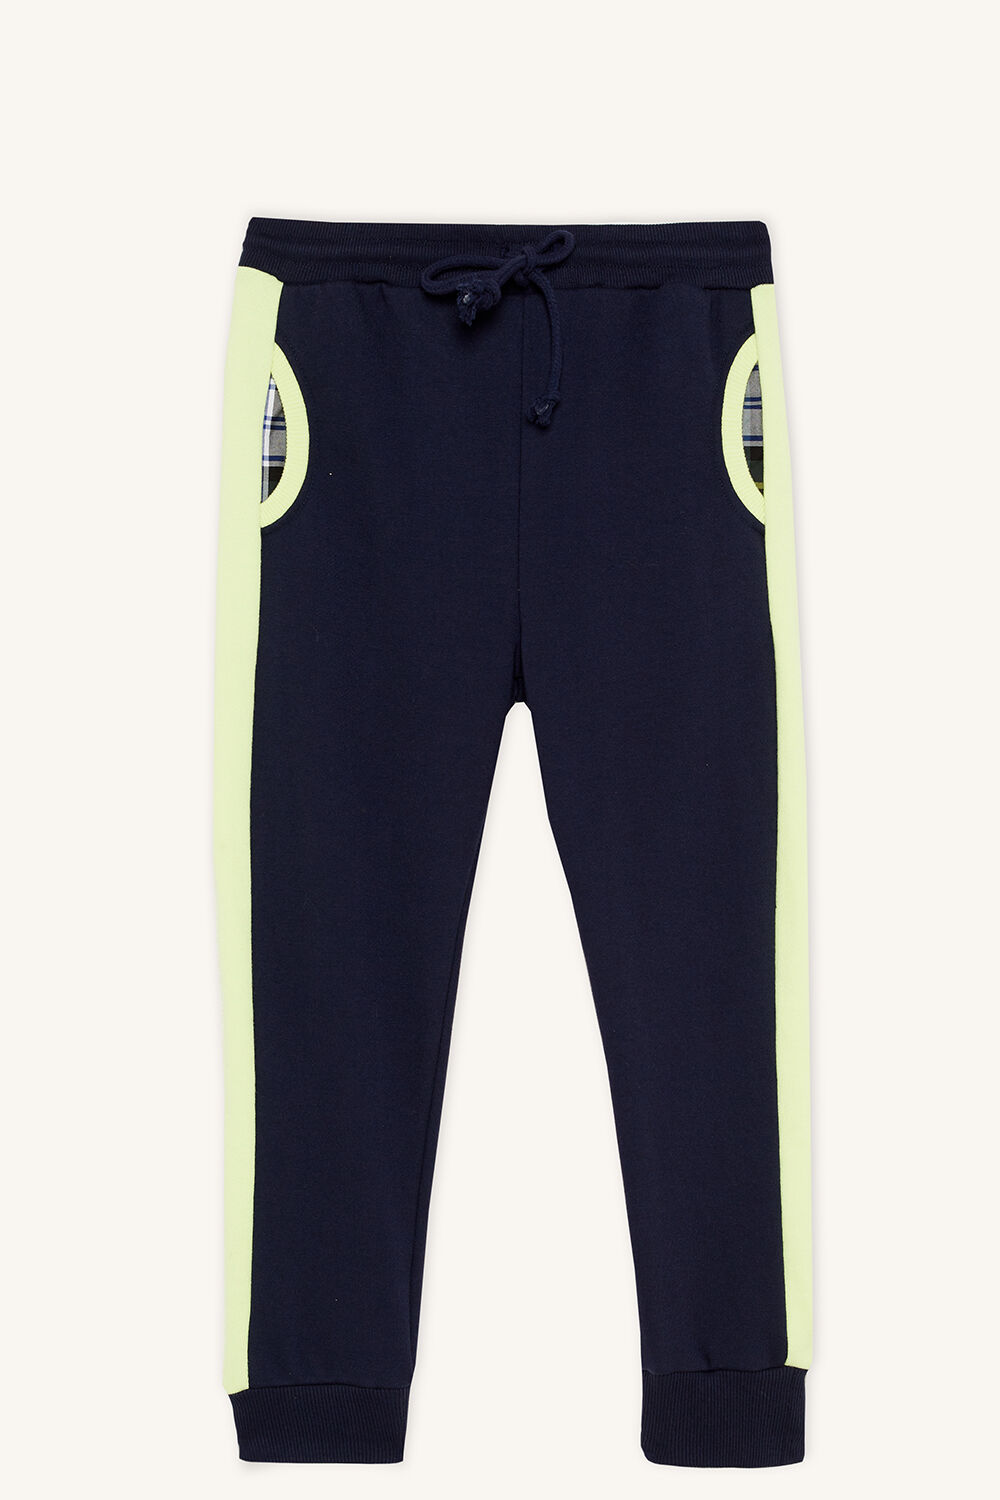 FIERCE TRACKY in colour BLACK IRIS